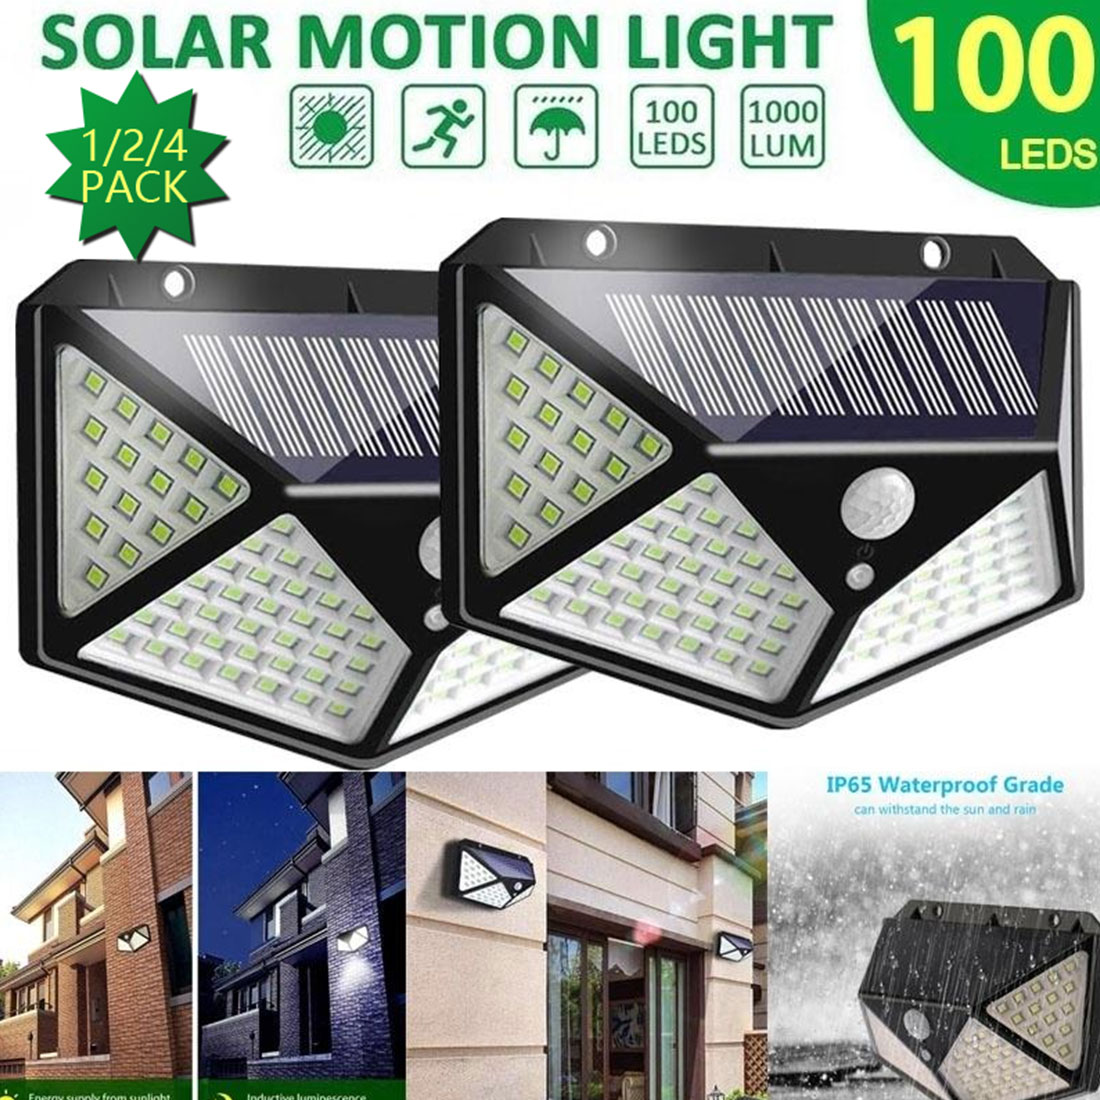 3 Modes 100 LEDs Solar Light Outdoor Solar Lamp Motion Sensor Wall Light Waterproof Solar Powered Sunlight for Garden Decoration